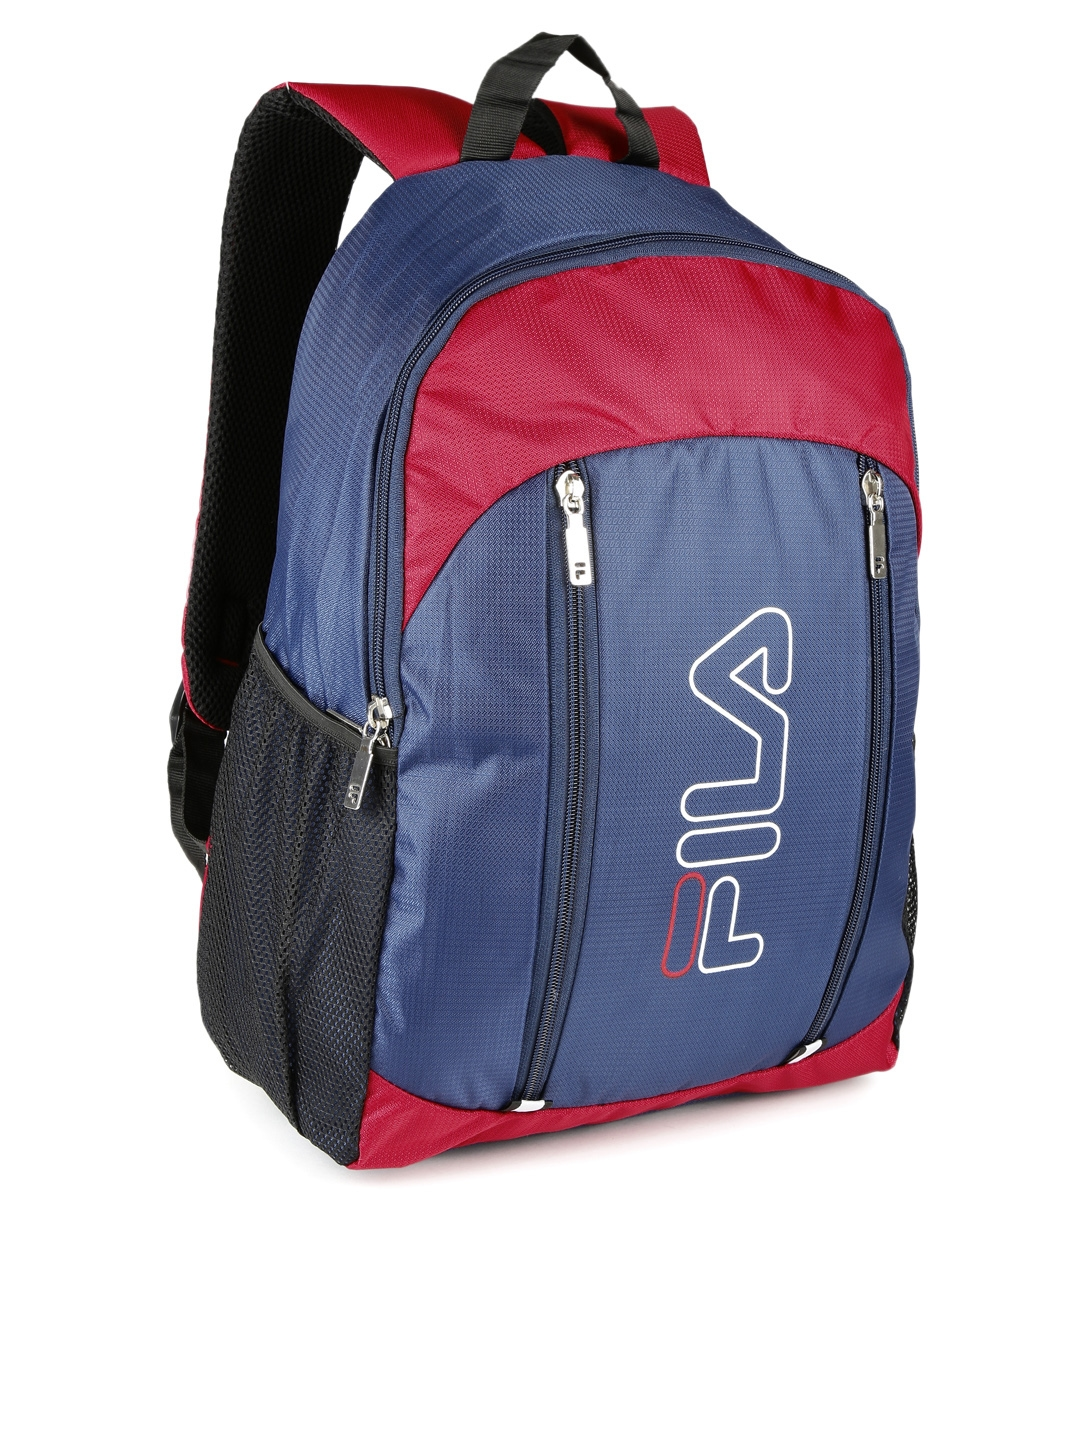 992ed067d961 Buy FILA Unisex Navy Blue   Red Earth Laptop Backpack - Backpacks ...